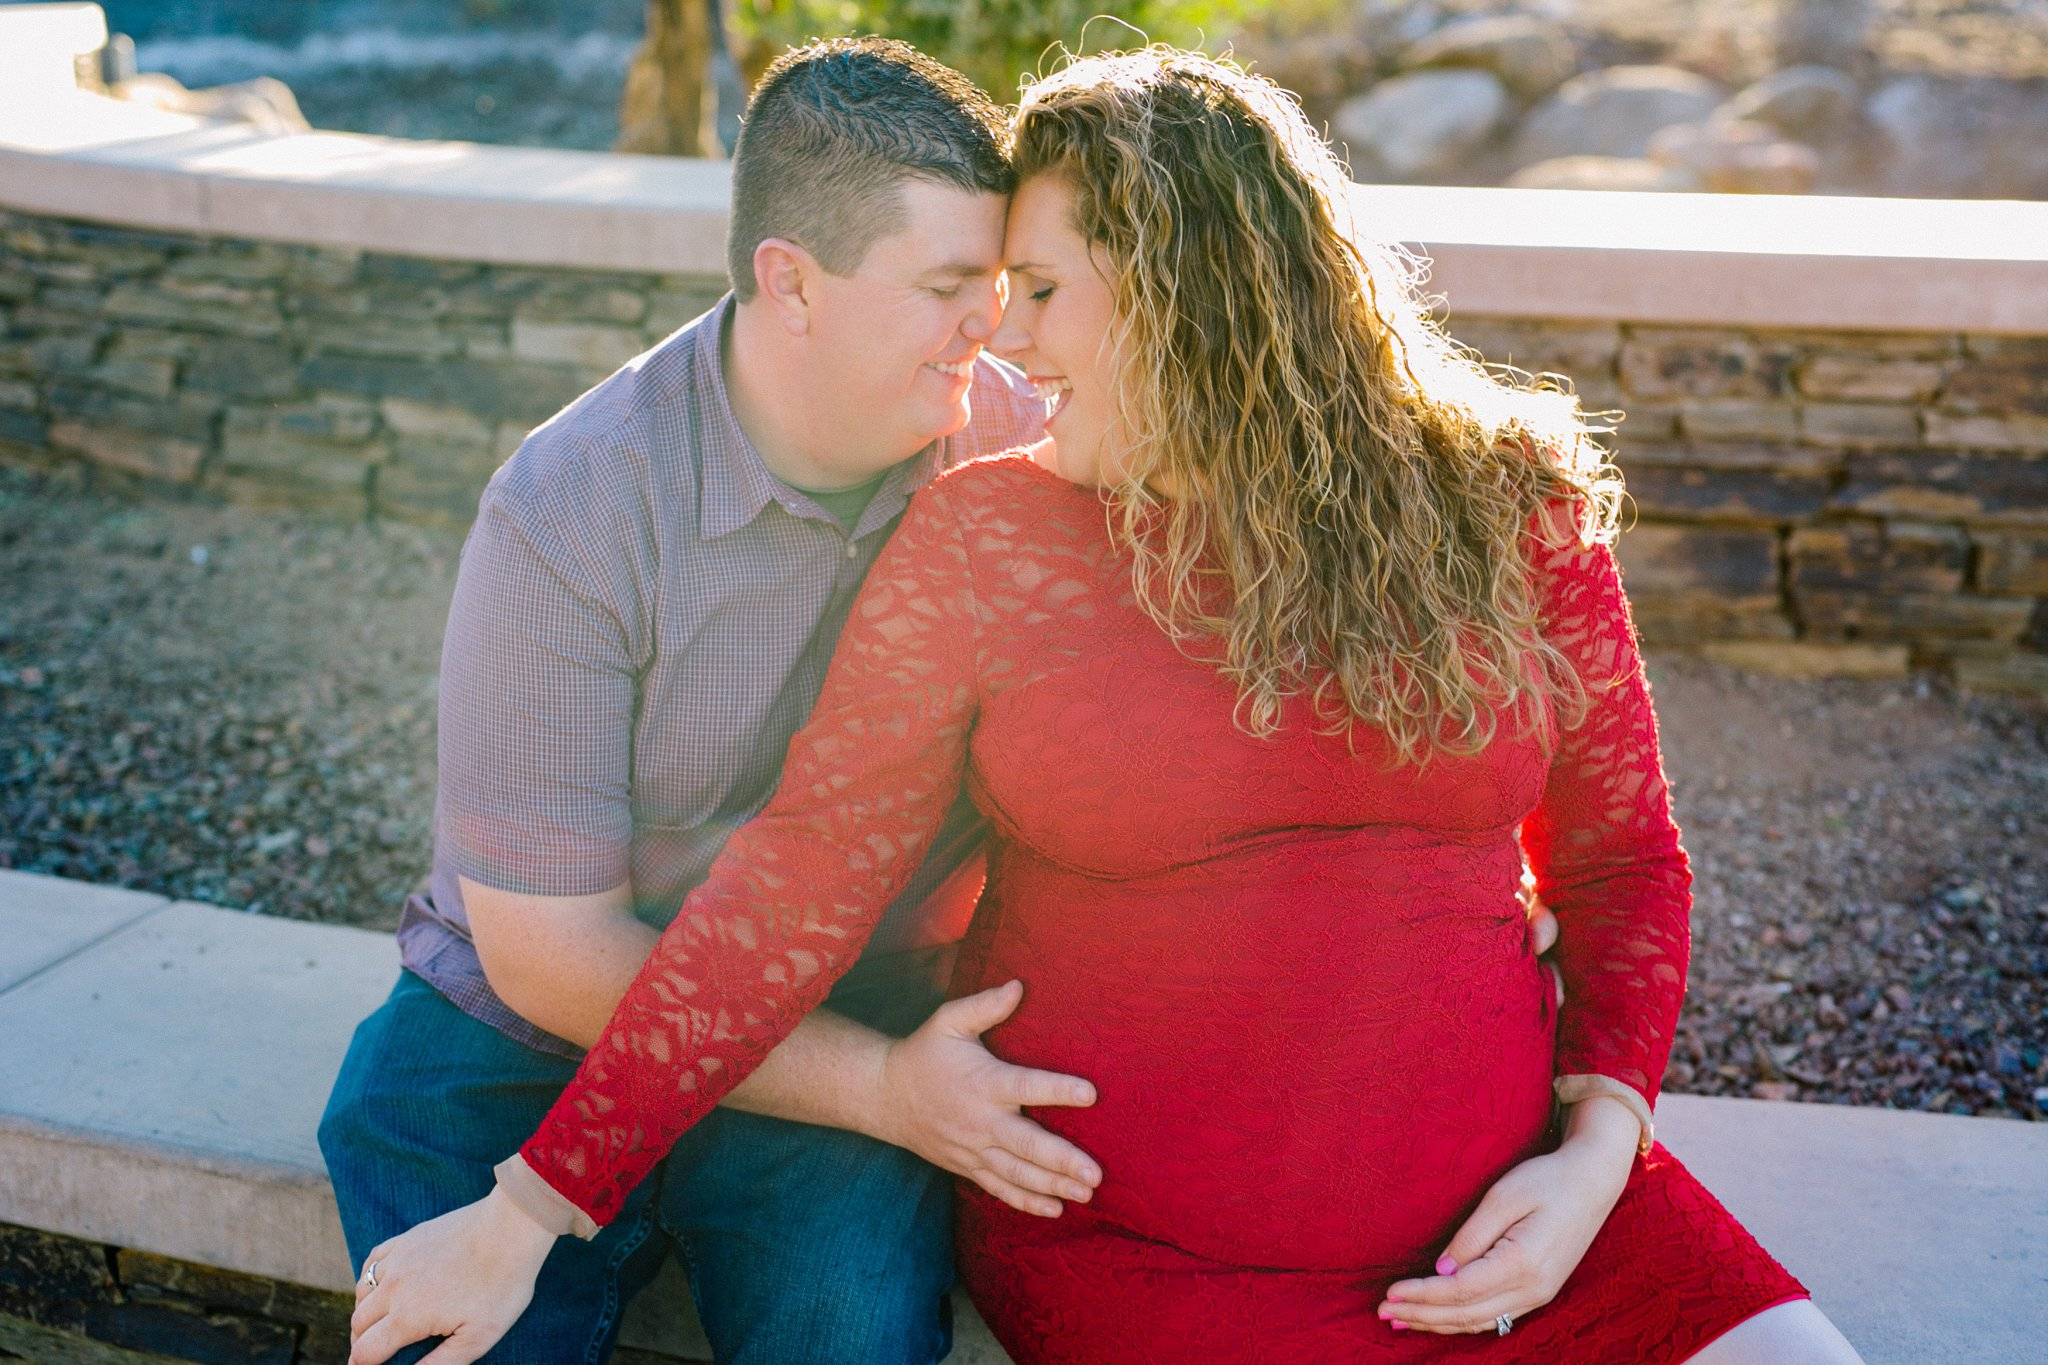 Goodyear maternity photos